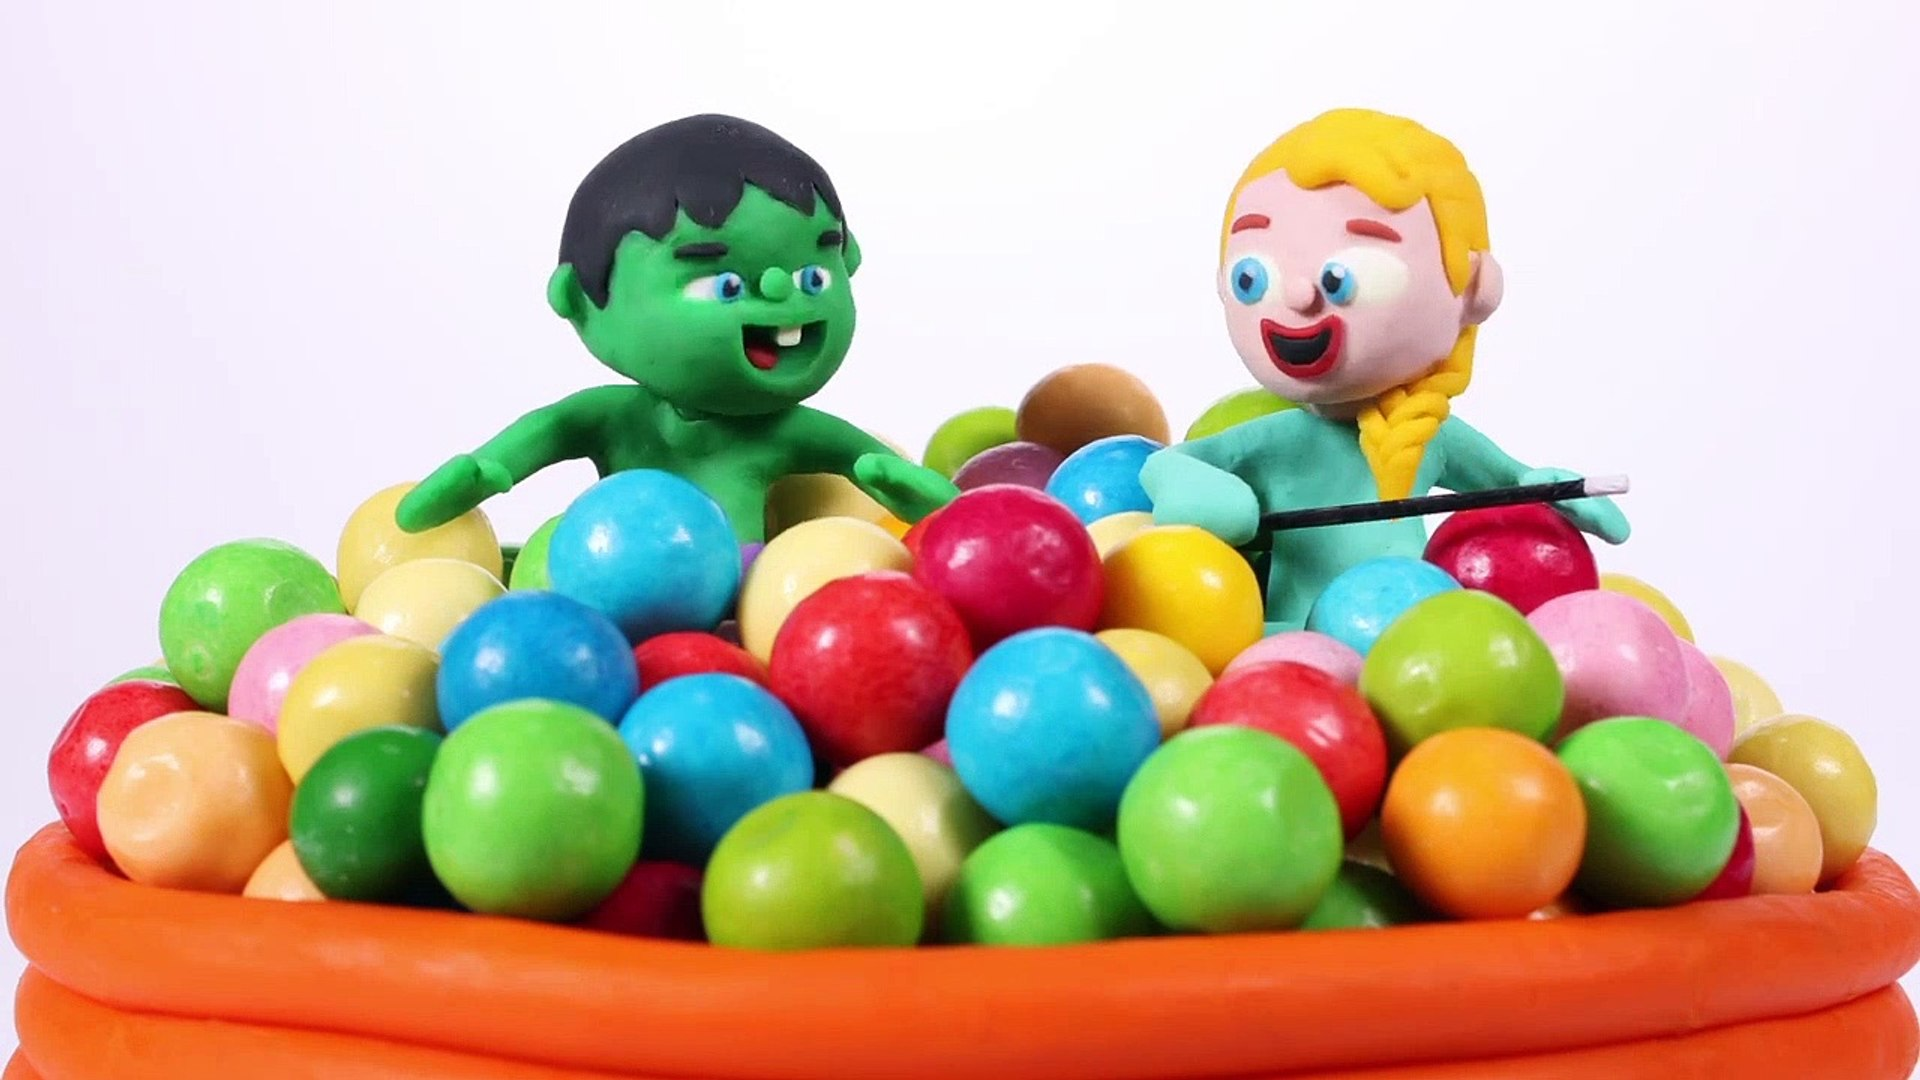 Kids Playing With A Gumball Machine ❤ PLAY DOH CARTOONS FOR KIDS